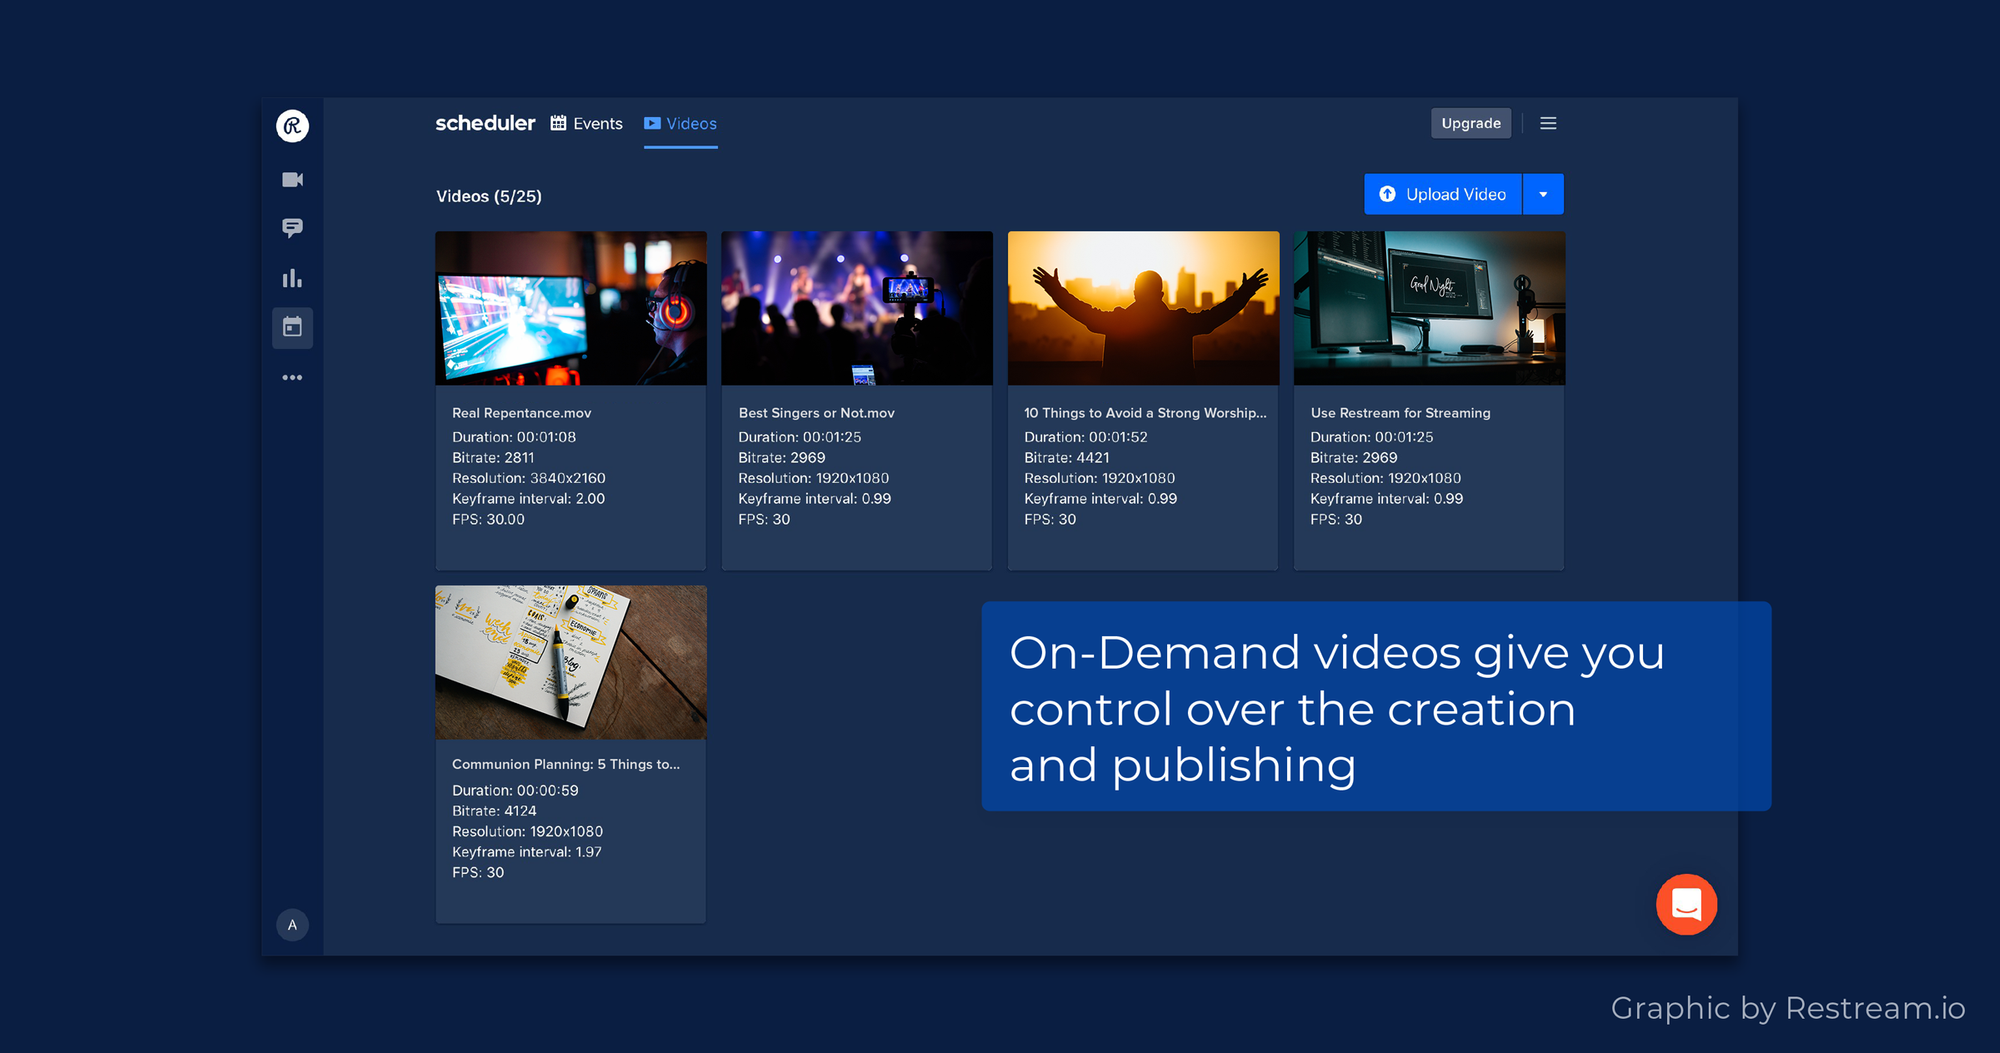 On-Demand videos give you control over the creation and publishing